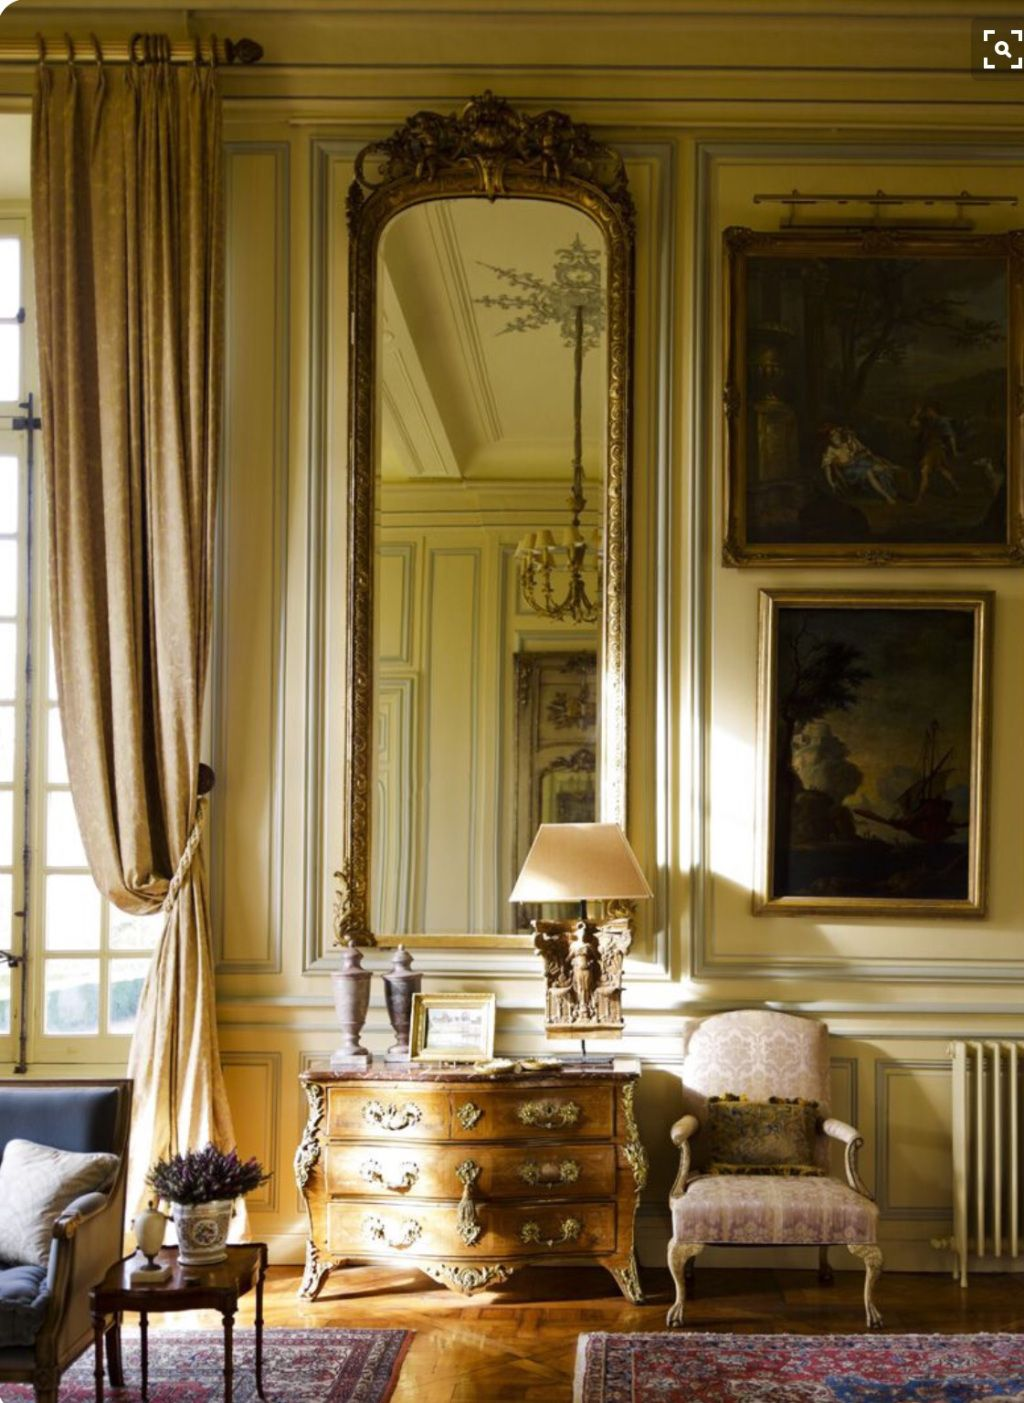 american home interiors. Image Credit: Architectural Digest--- Classic French Chateau Style Home Interior Design Inspiration American Interiors E